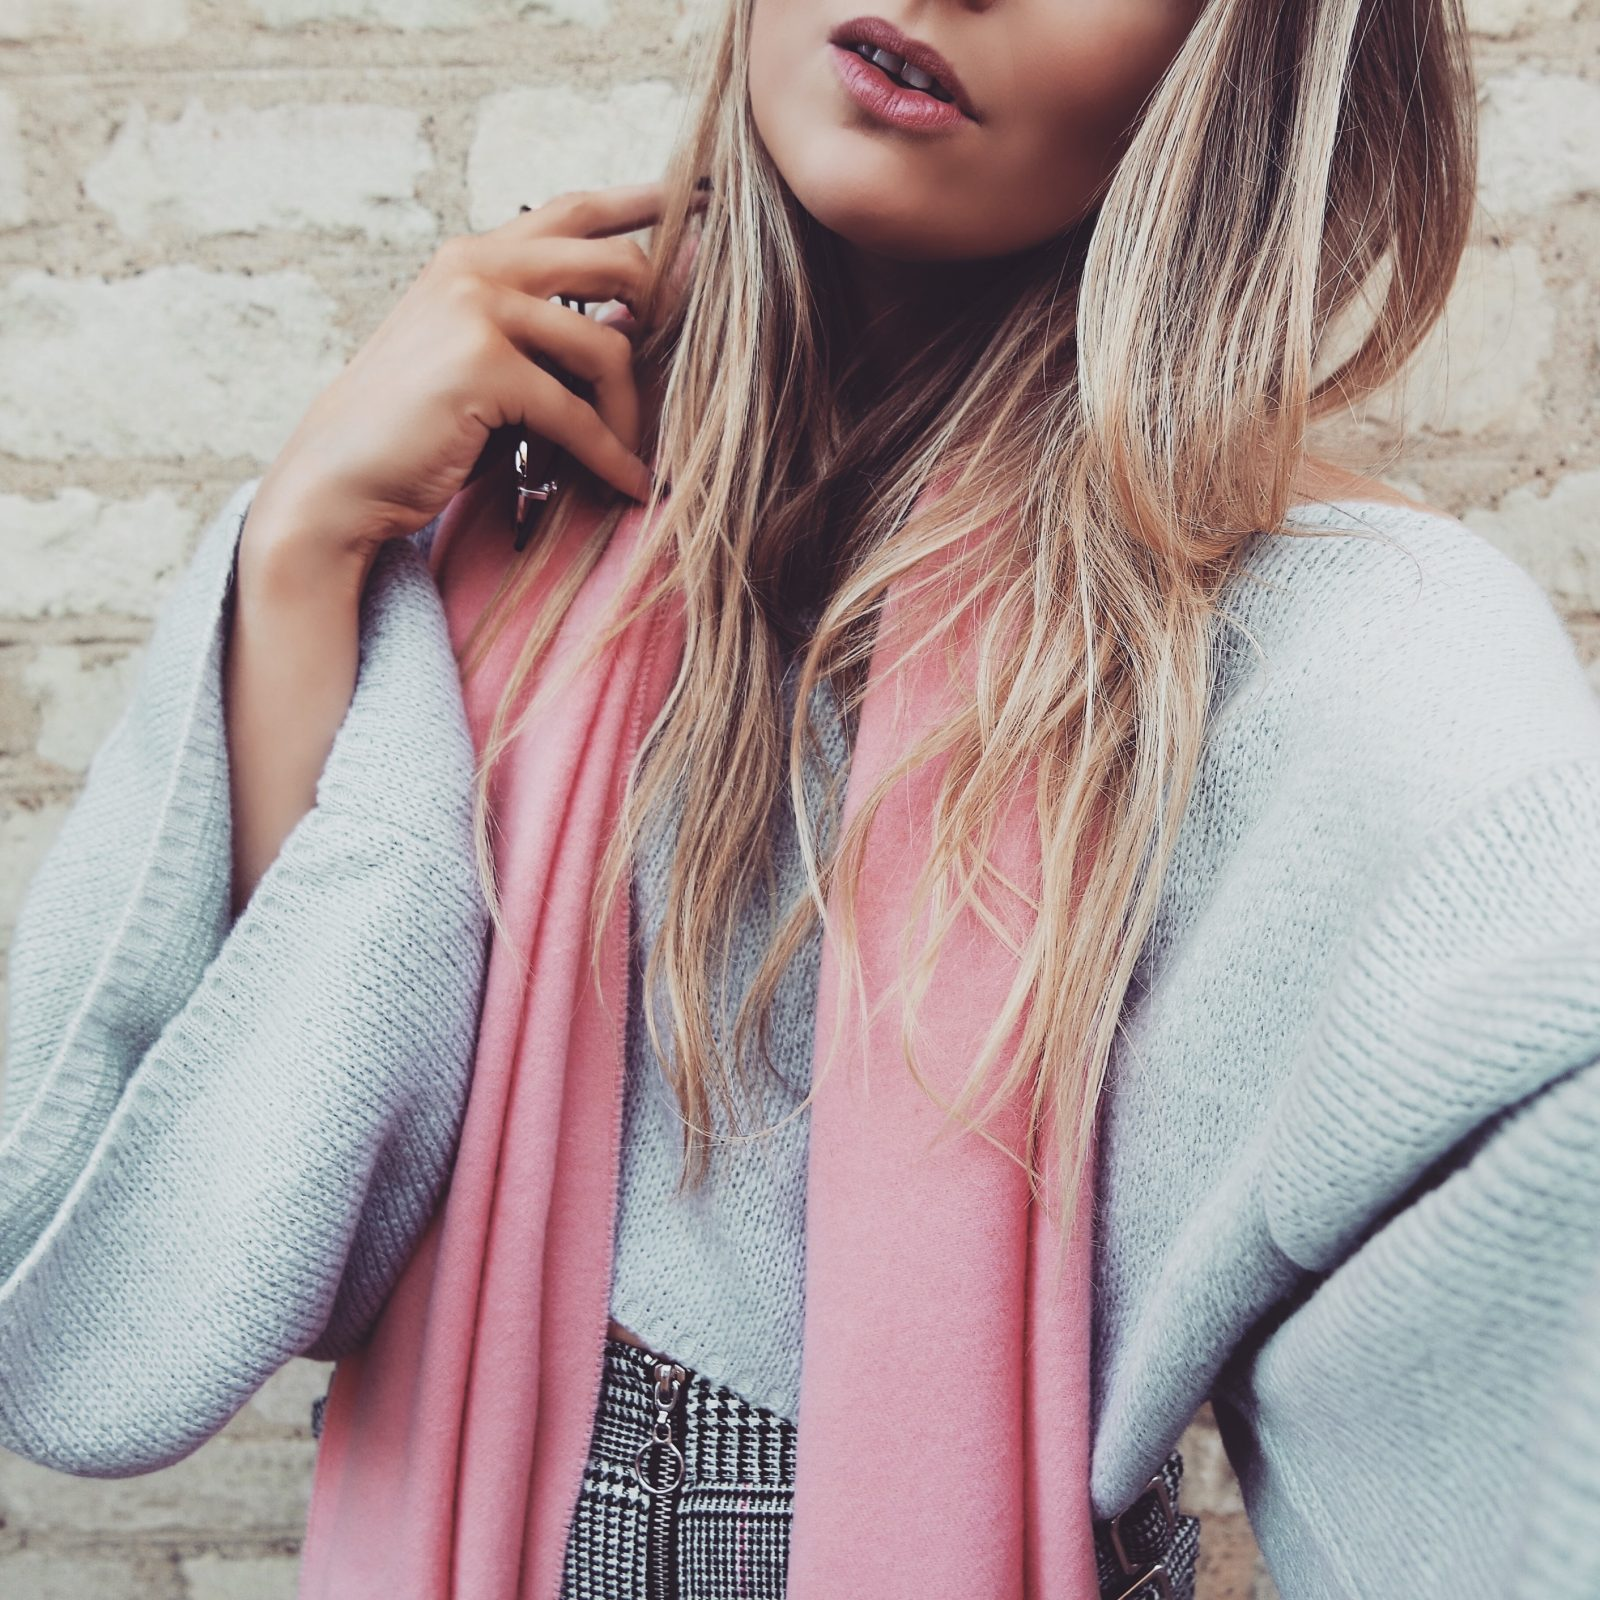 Pink Acne Scarf - Net A Porter